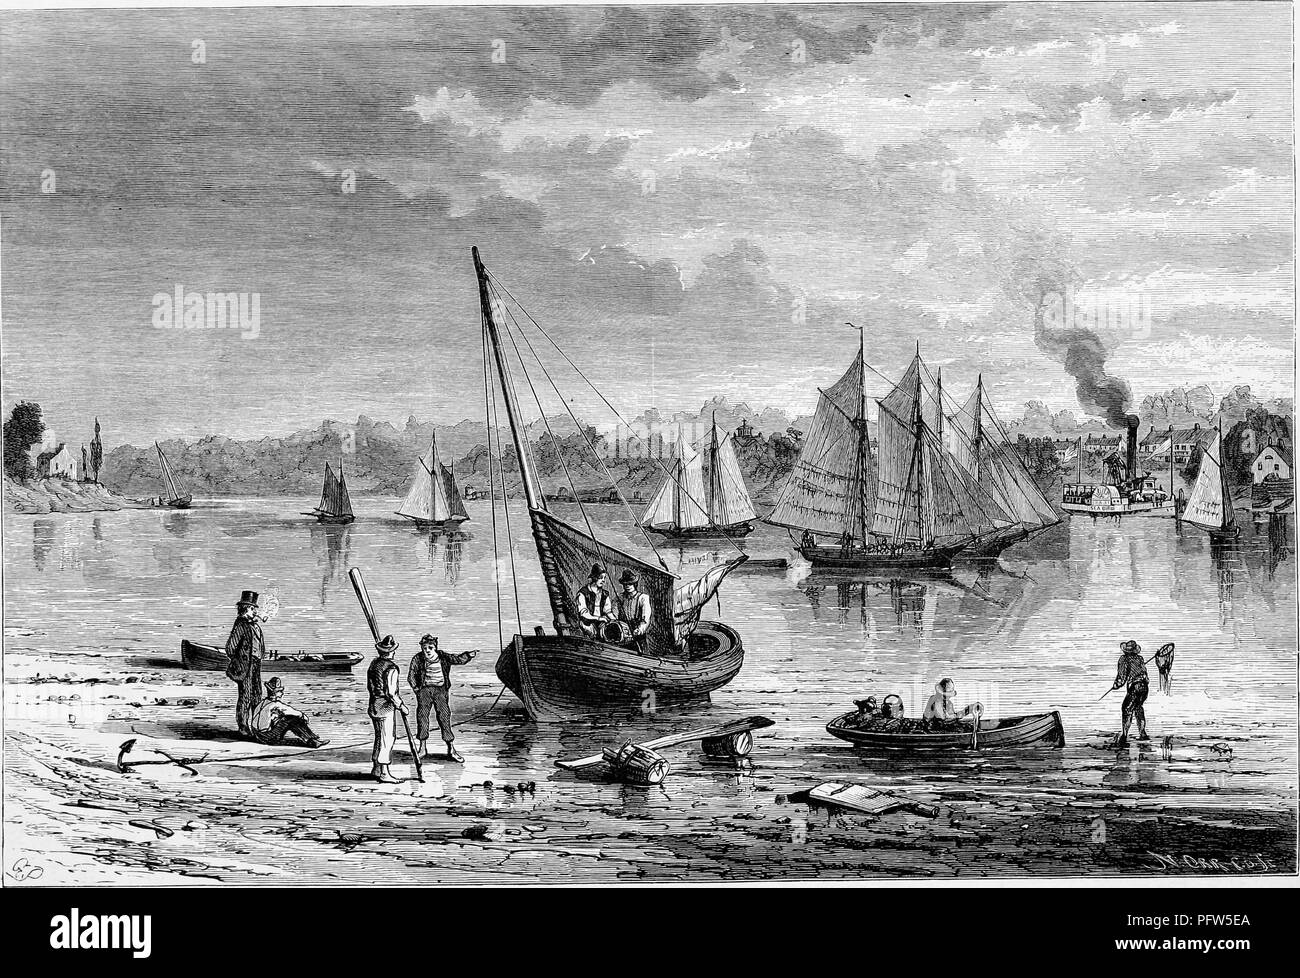 Black and a white vintage print depicting men and sailing vessels on the shore, with more sailboats and the town of Red Bank in the background, located on the Navesink River in New Jersey, published in William Cullen Bryant's edited volume 'Picturesque America; or, The Land We Live In', 1872. Courtesy Internet Archive. () - Stock Image